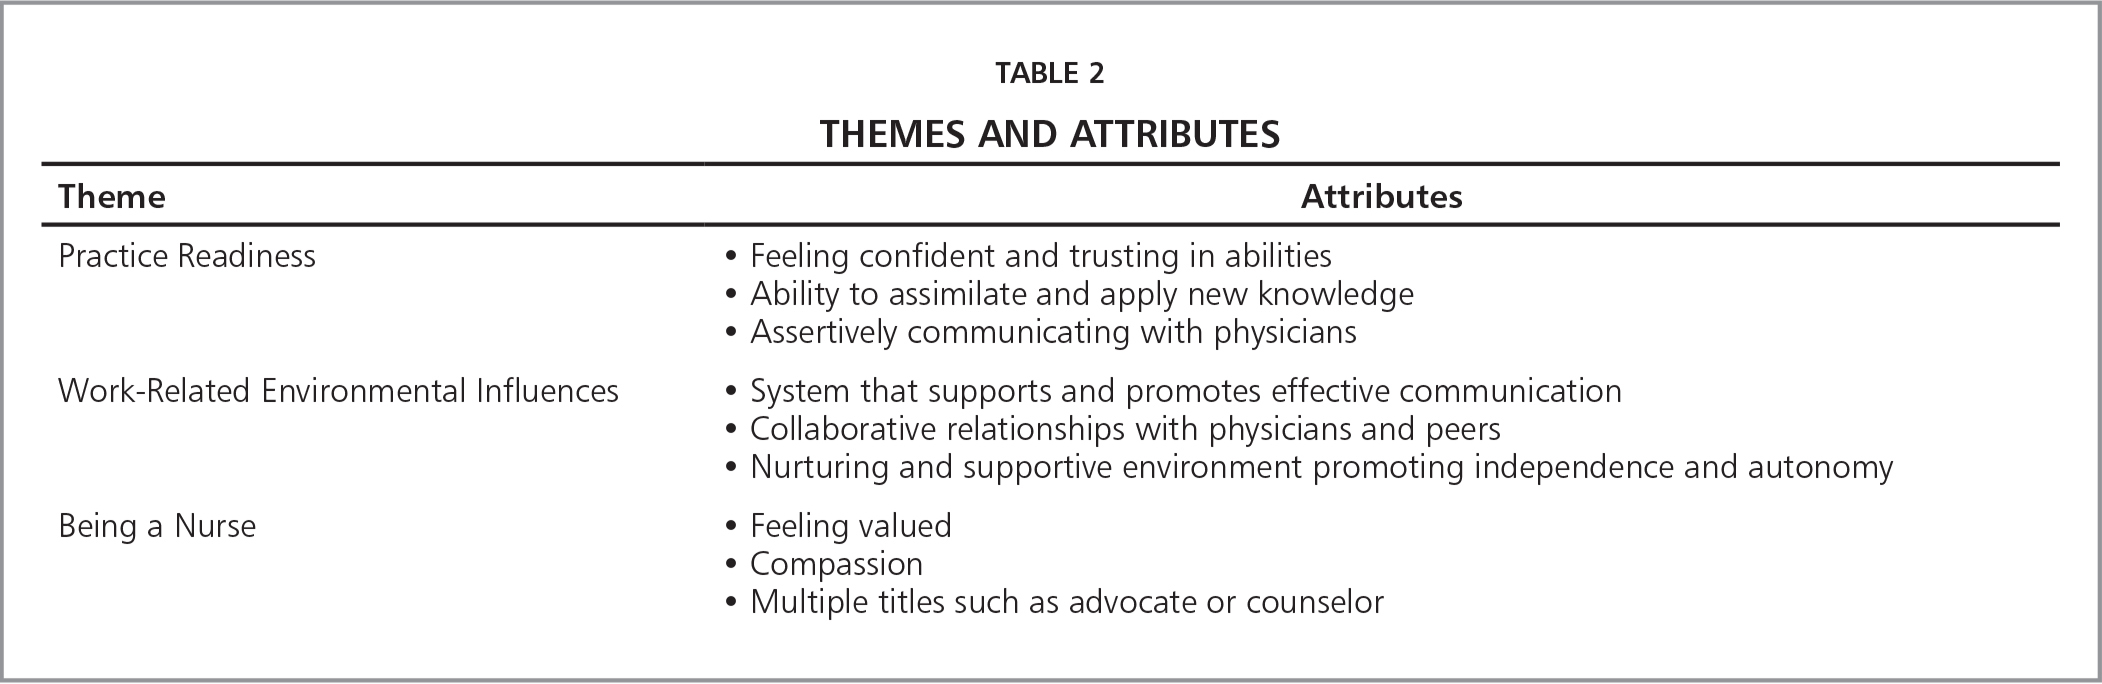 Themes and Attributes